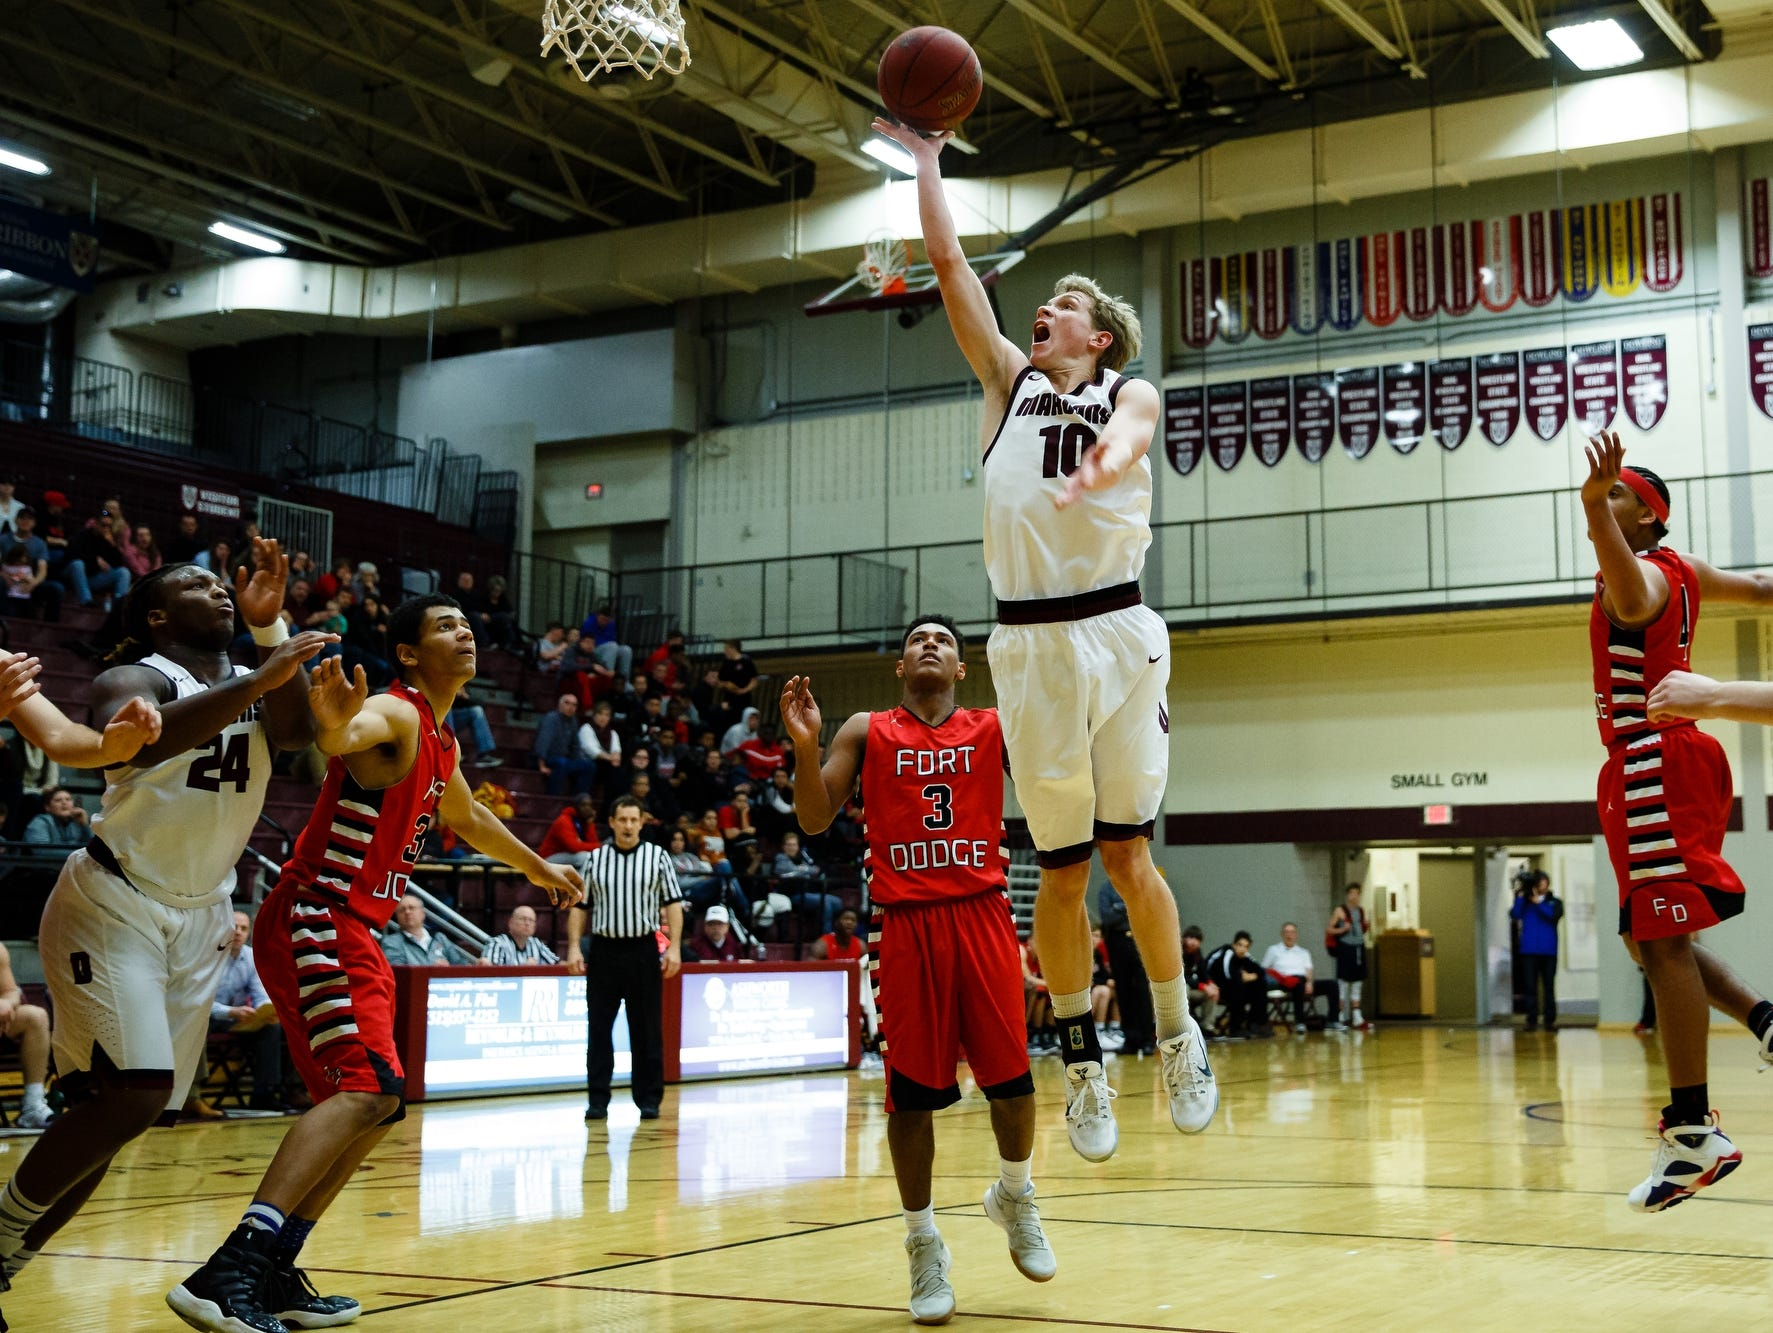 Dowling Catholic's Sam Olson goes up for a layup during their game against Fort Dodge at Dowling Catholic on Saturday, Jan. 14, 2017, in West Des Moines. Dowling Catholic would go on to win 70-35.